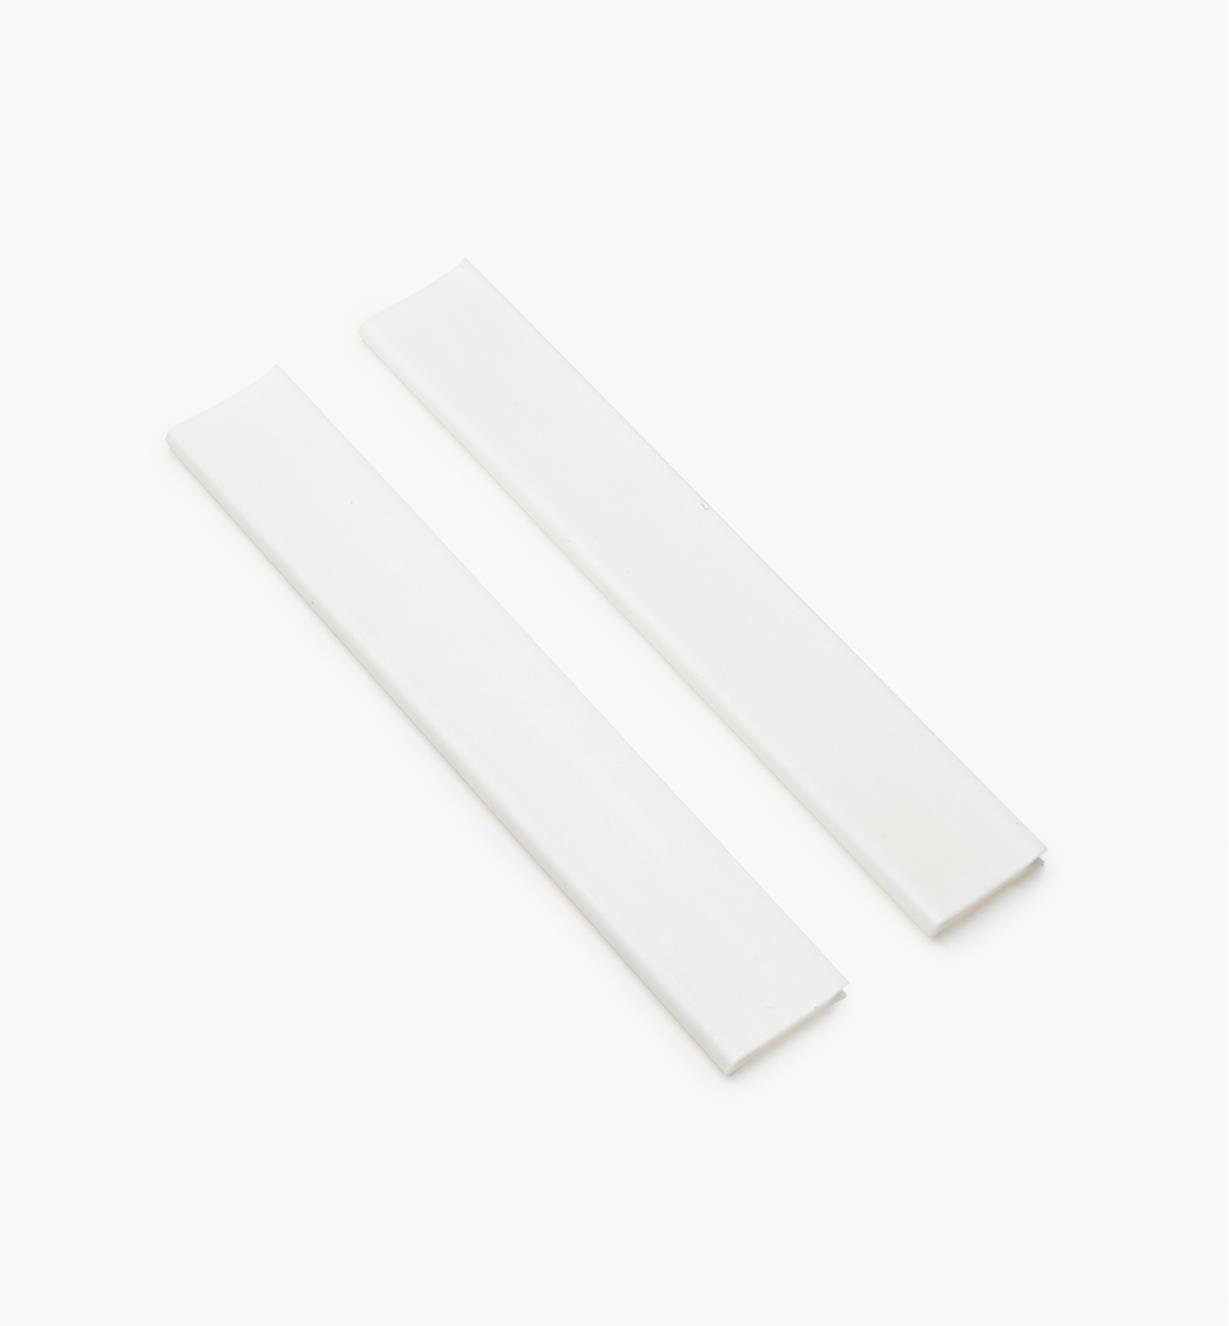 "97K6201 - 6 1/2"" × 1"" Blade Guards, pair"